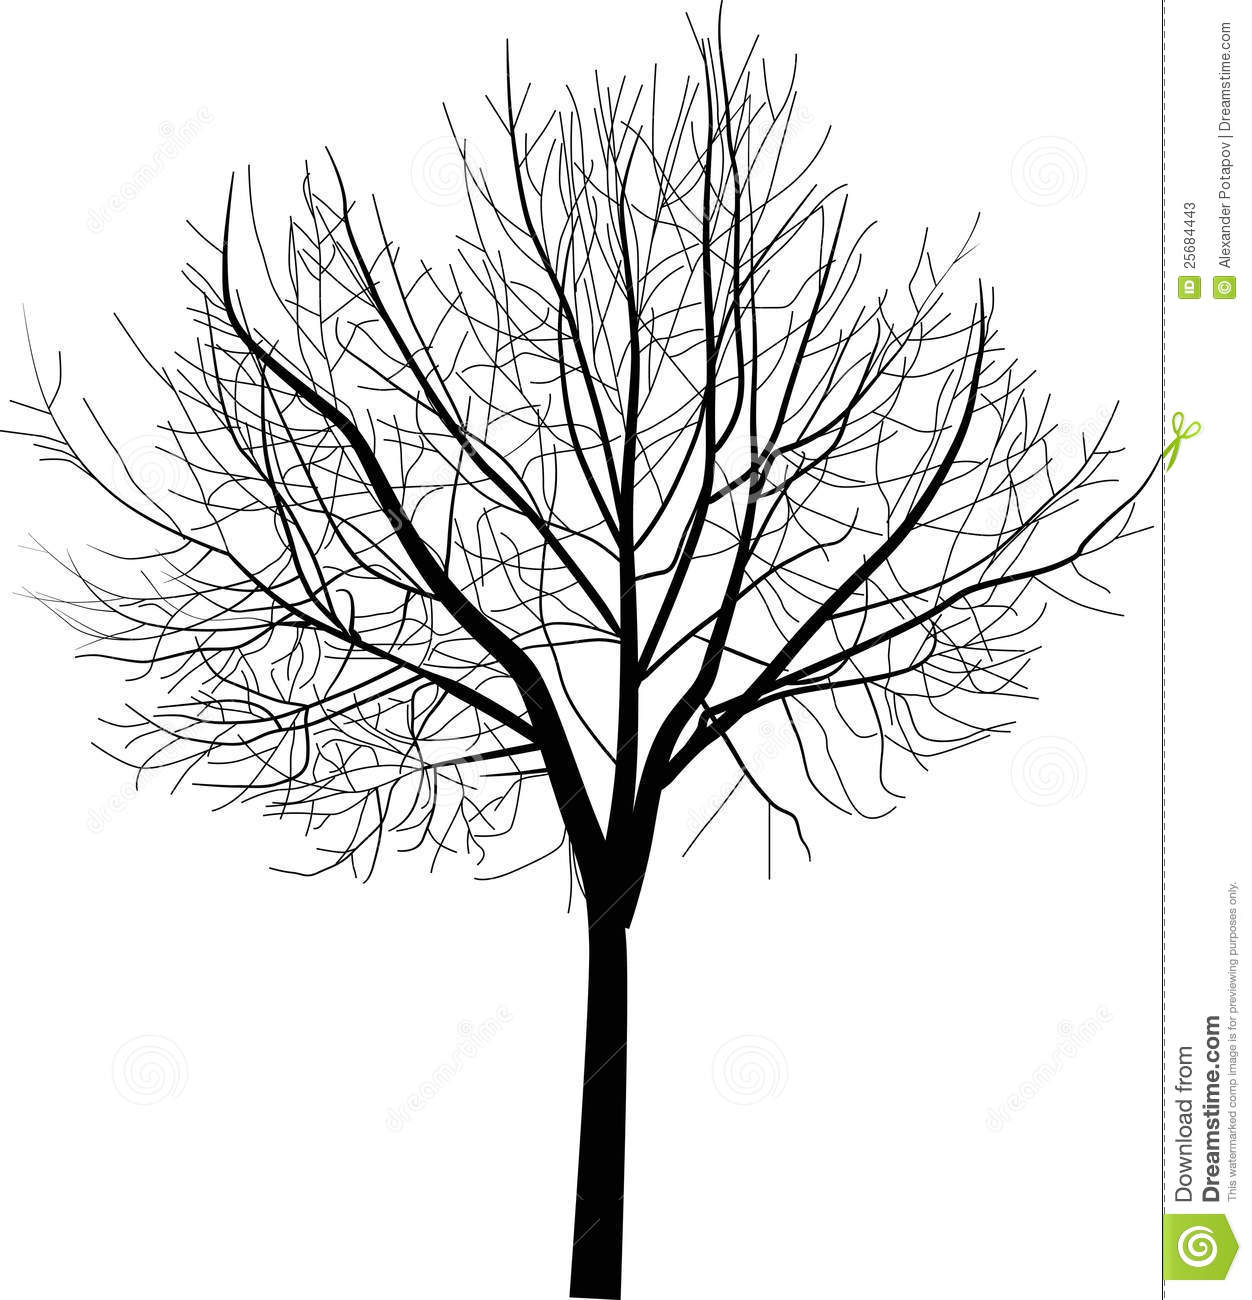 Isolated Bare Tree Illustration Stock Vector - Image: 25684443